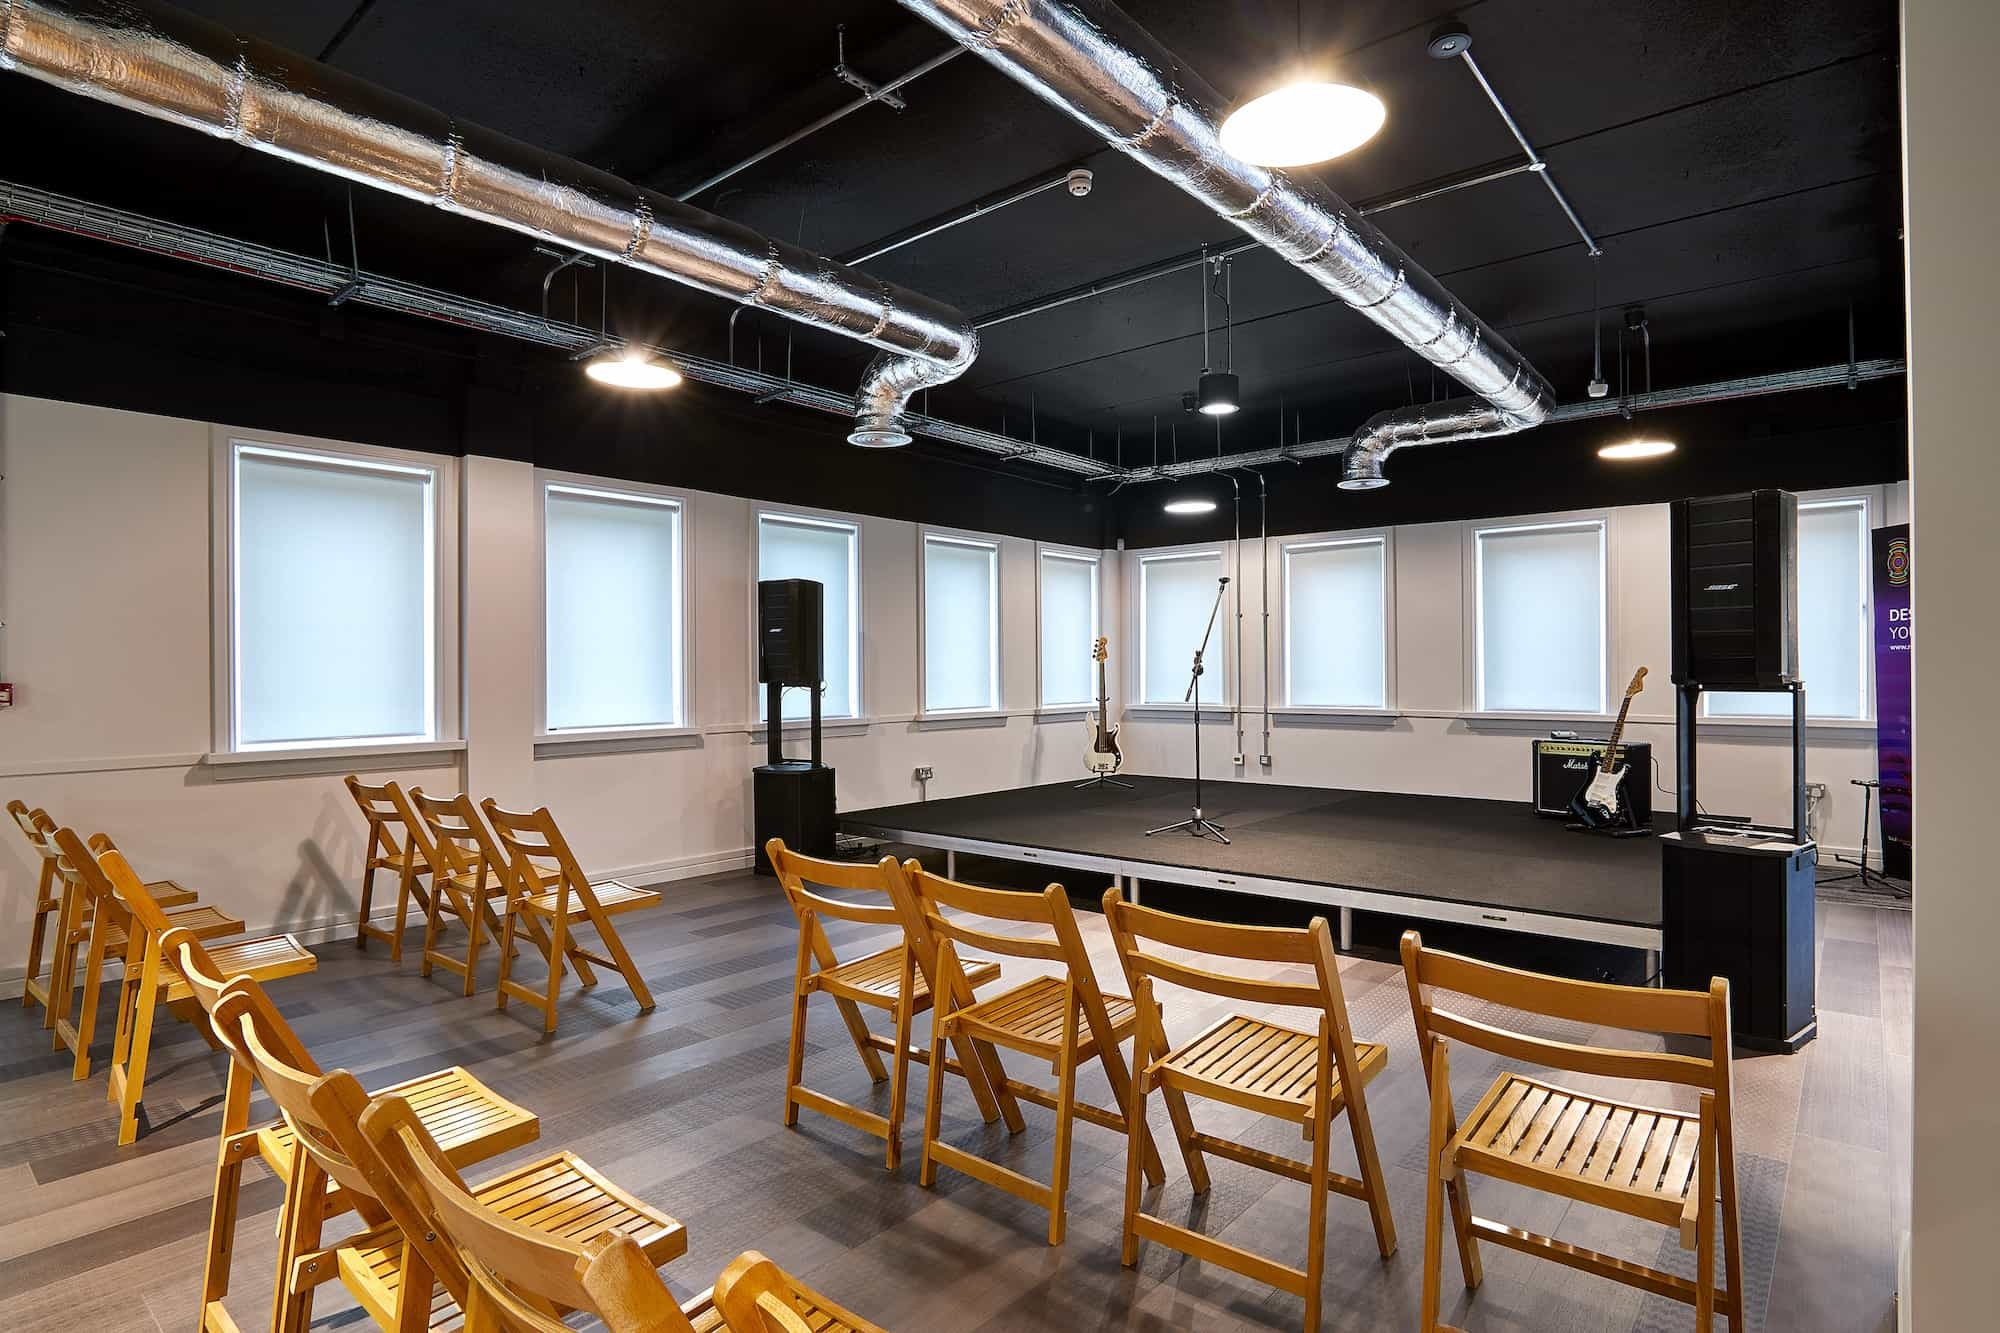 Resonance performance space fit out